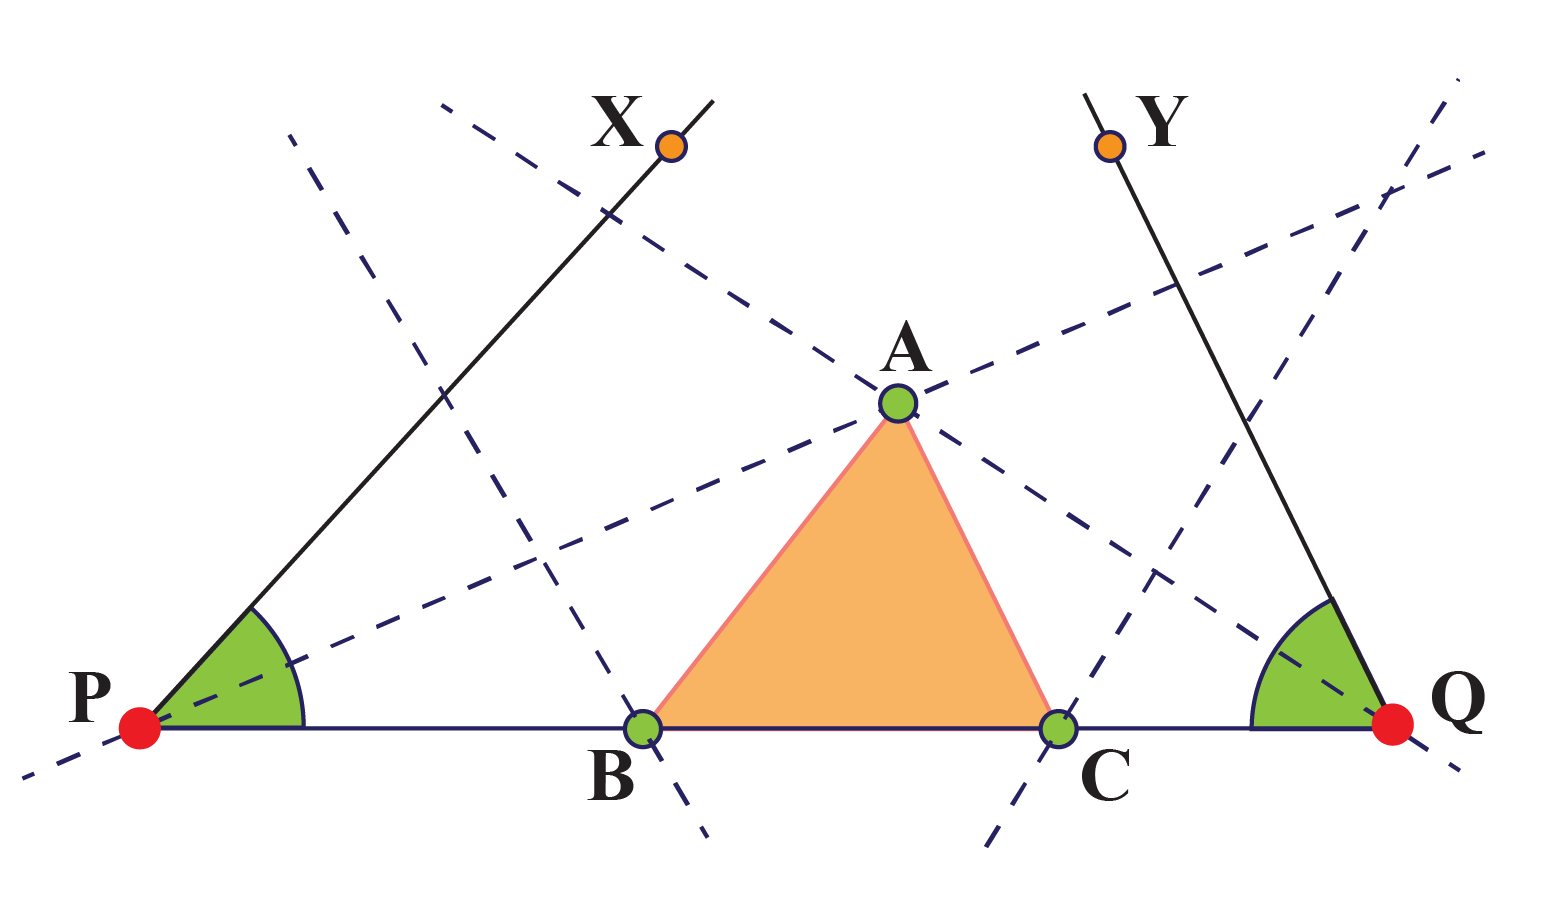 Angle bisectors and triangle